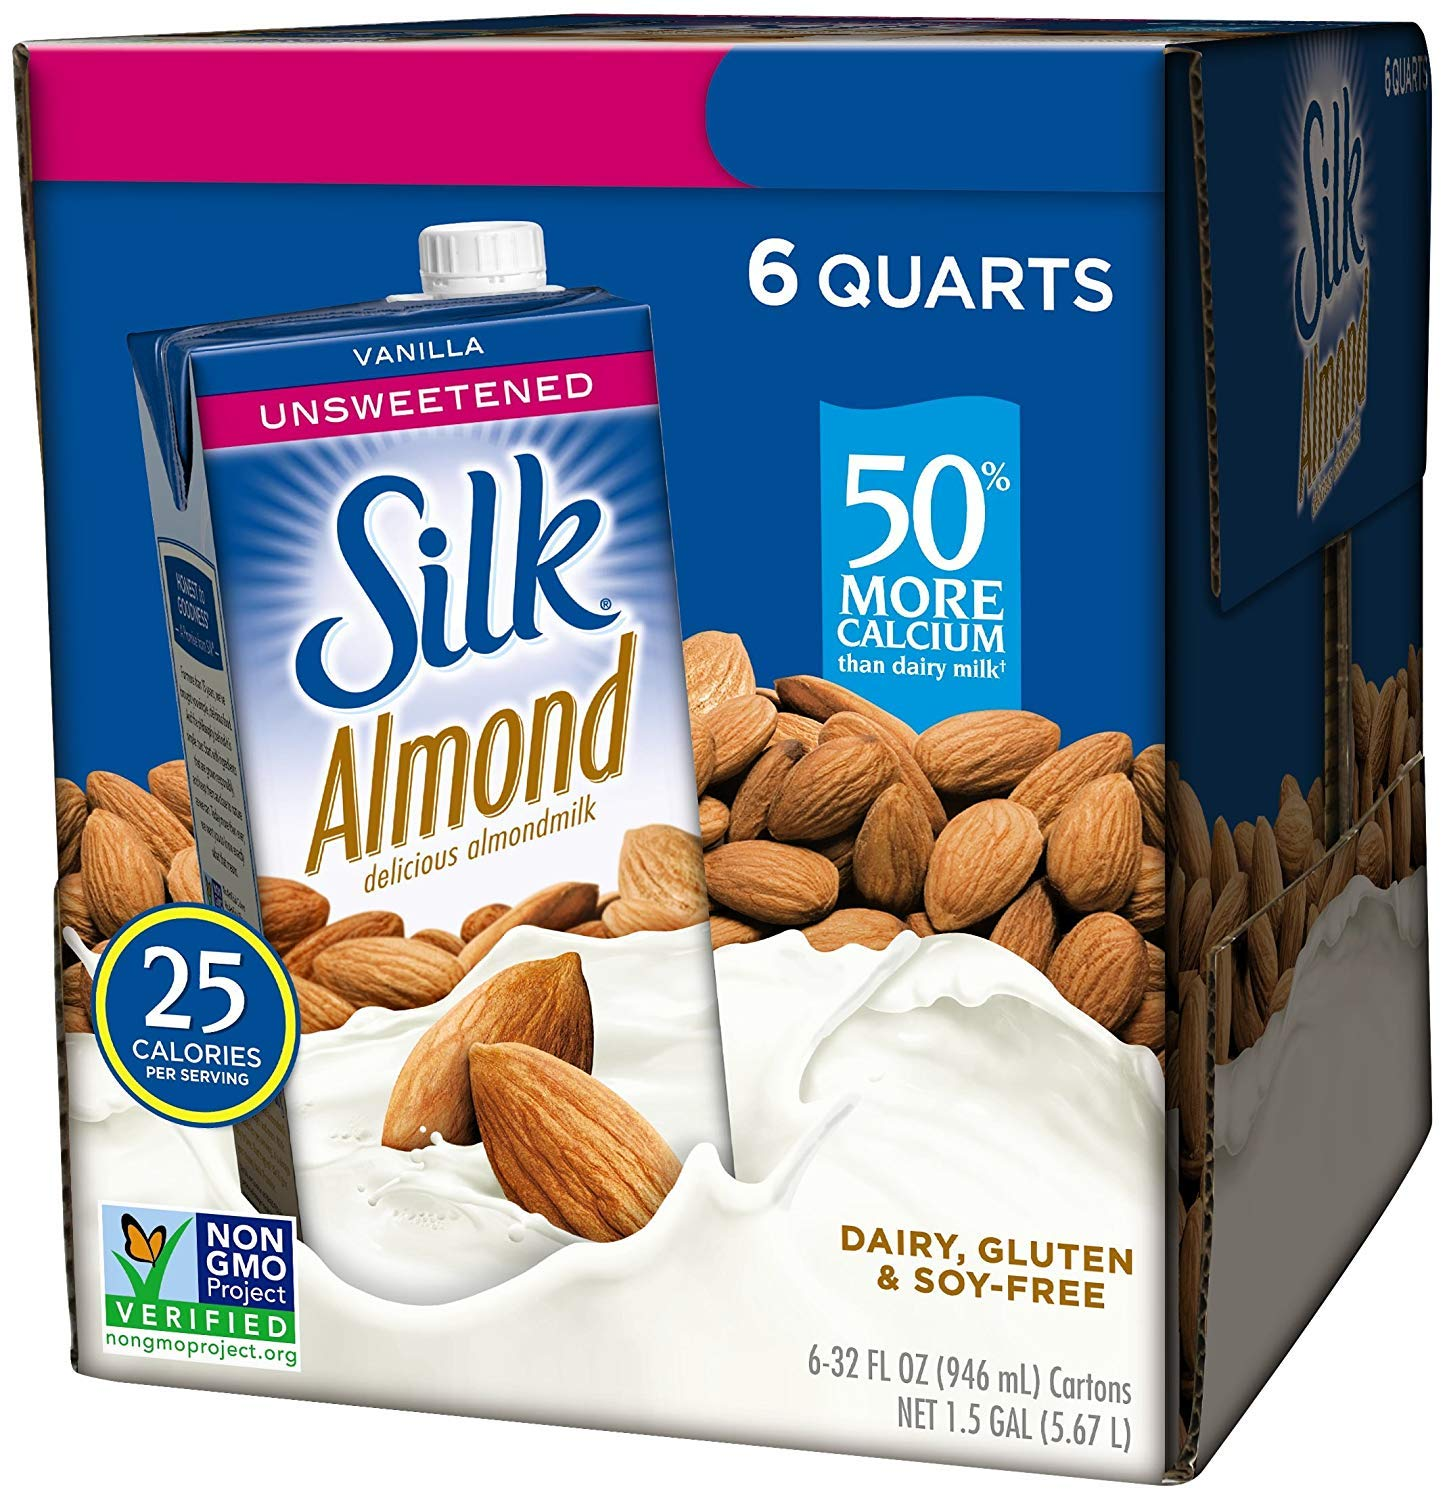 Silk Almond Milk, Unsweetened Vanilla, 32 Fluid Ounce (Pack of 6), Vanilla Flavored Non-Dairy Almond Milk, Dairy-Free Milk (2 Boxes)